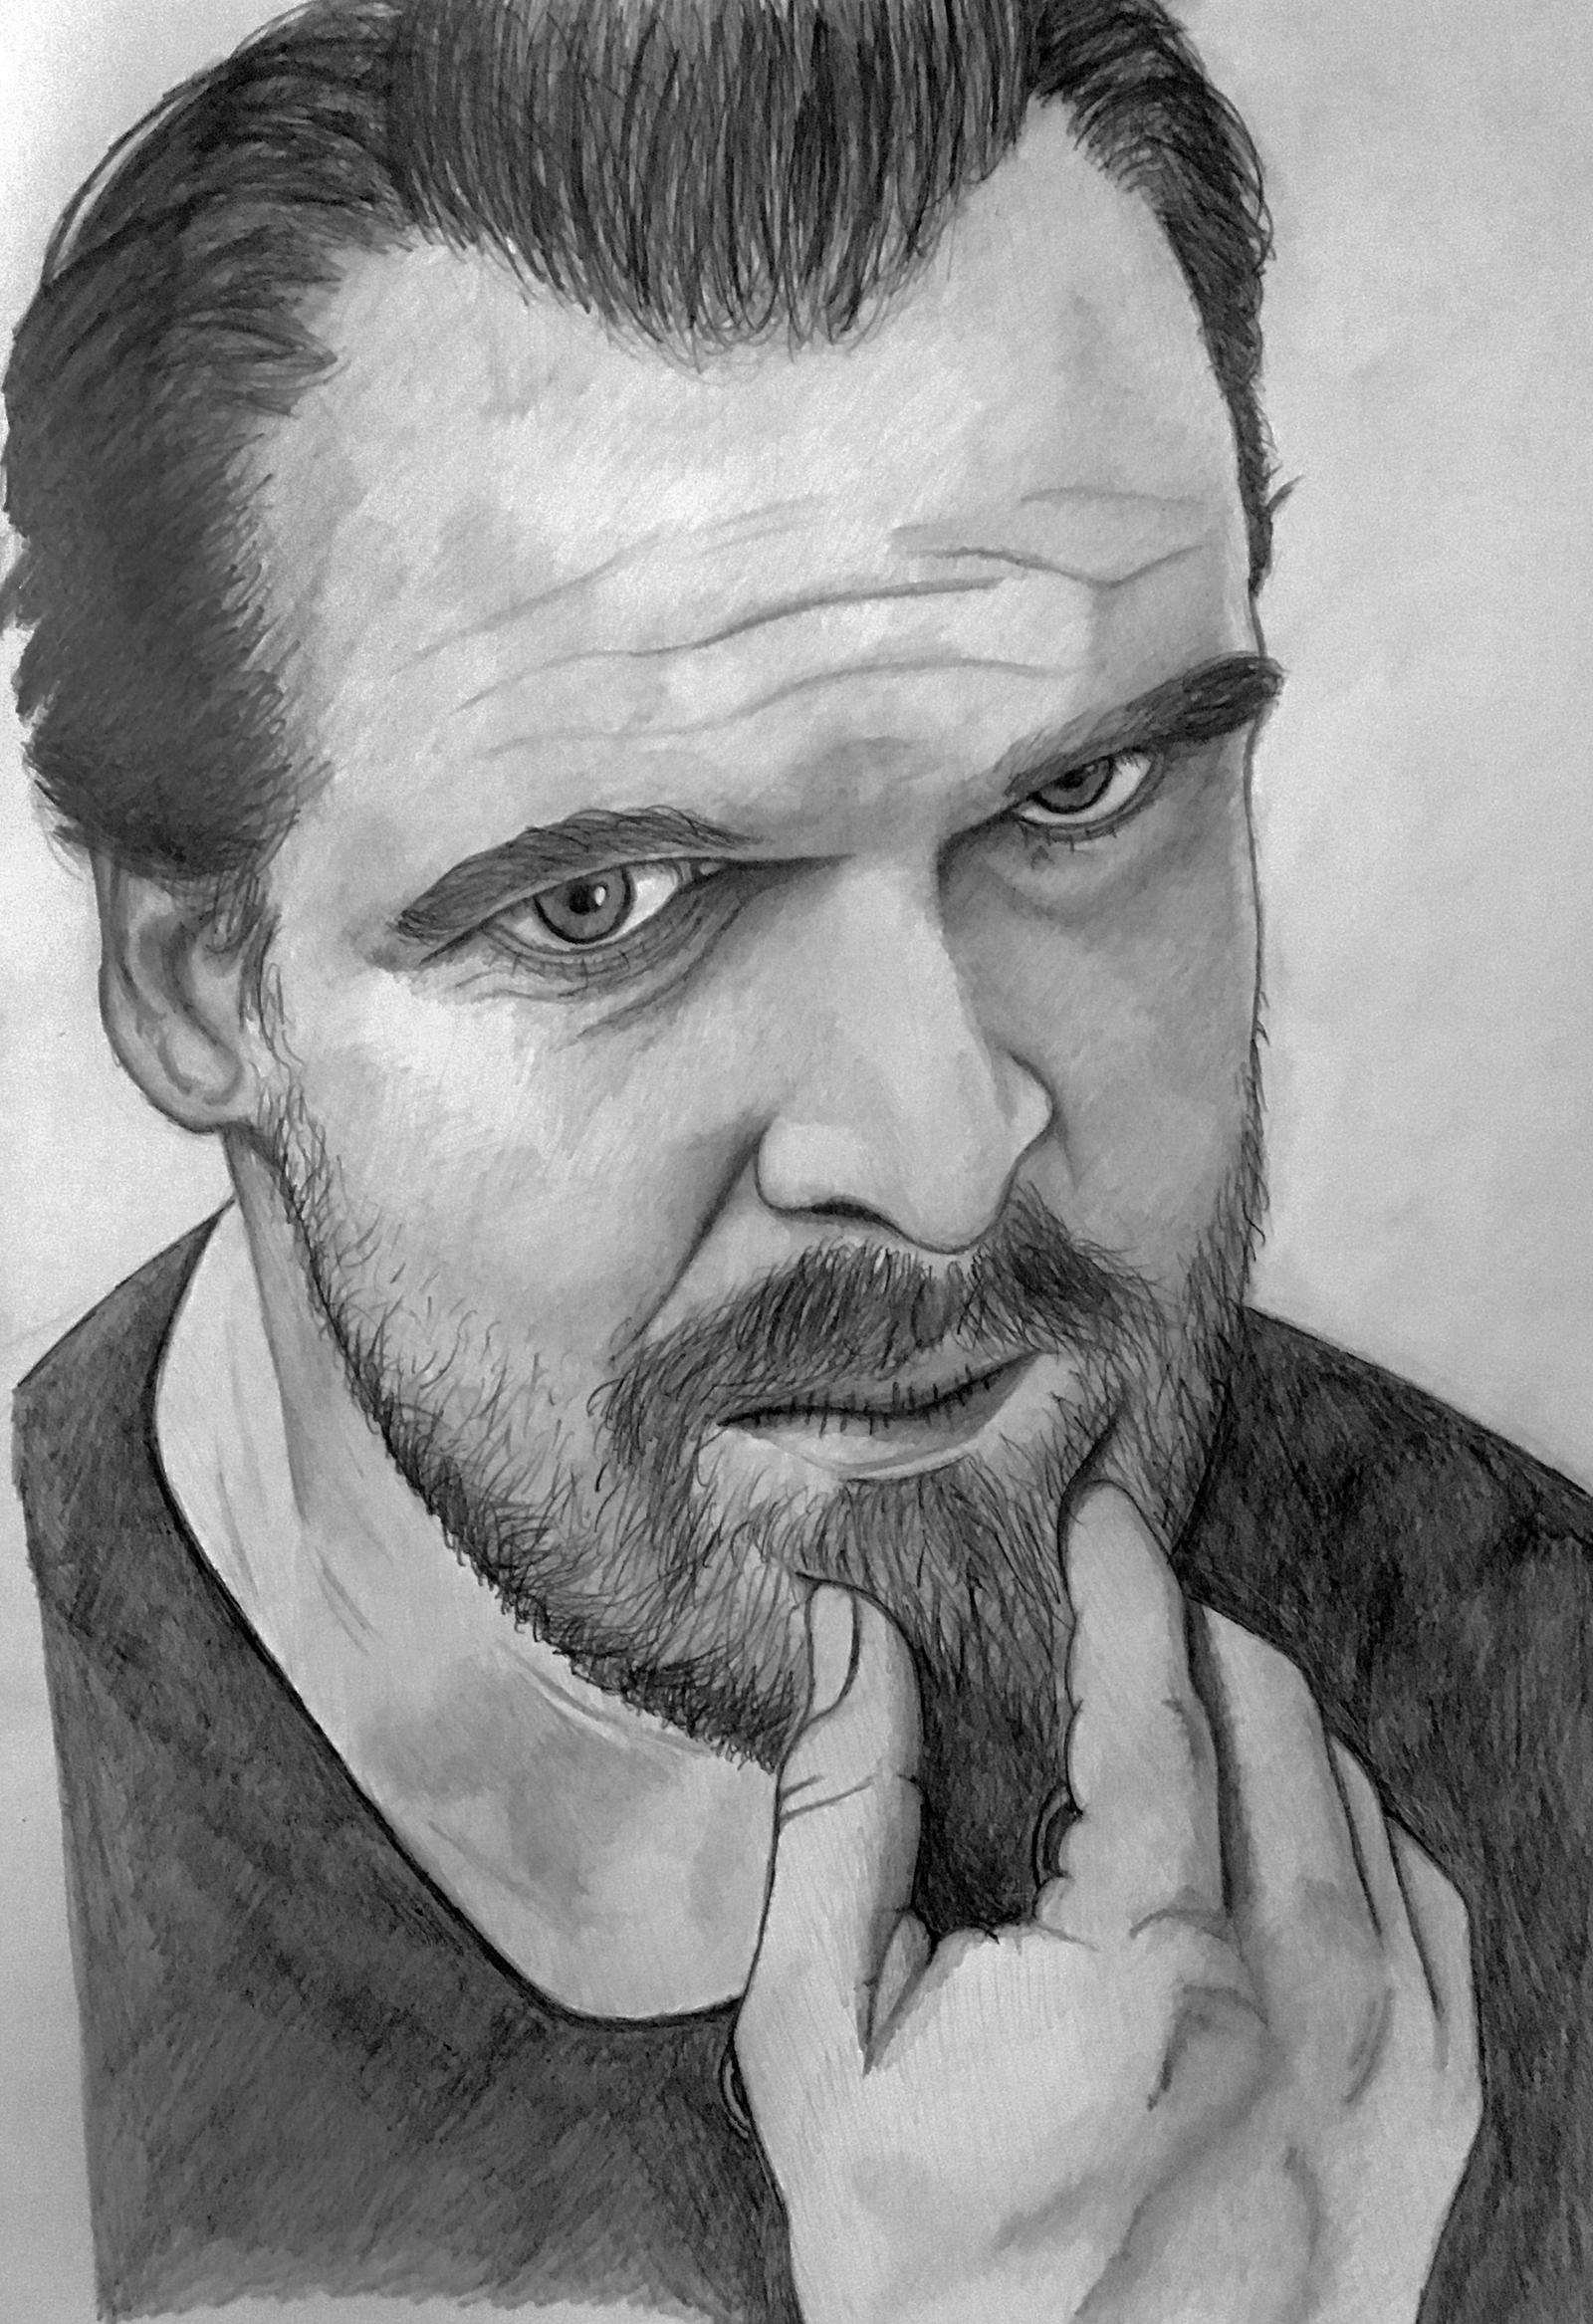 David Harbour by Miltage